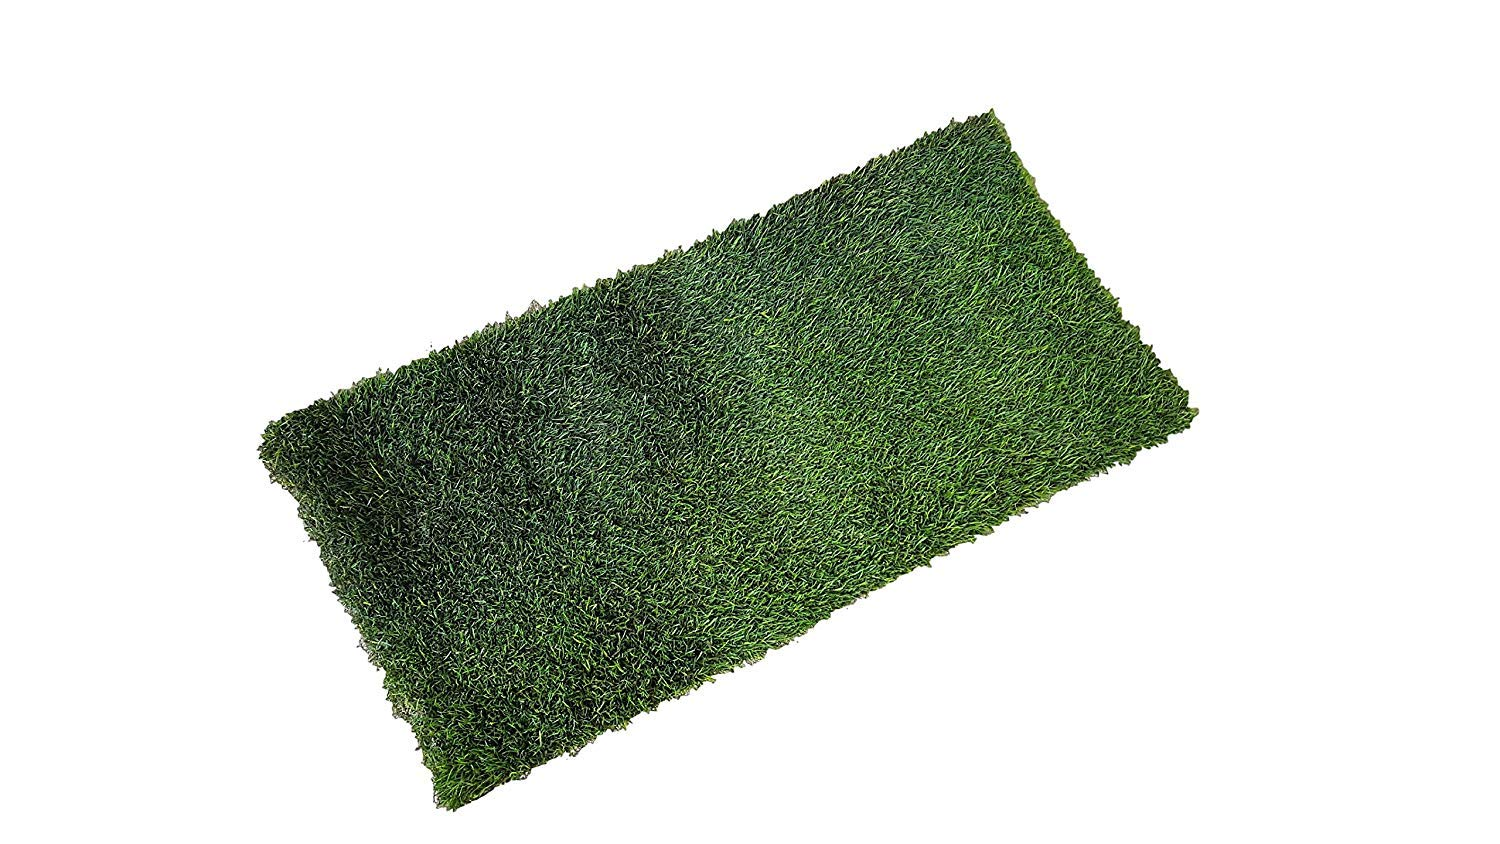 Fresh Patch XL - Real Grass Pee and Potty Training Pad for Large Dogs and Multi-Dog Households - Indoor and Outdoor Use - 48 Inches x 24 Inches by Fresh Patch